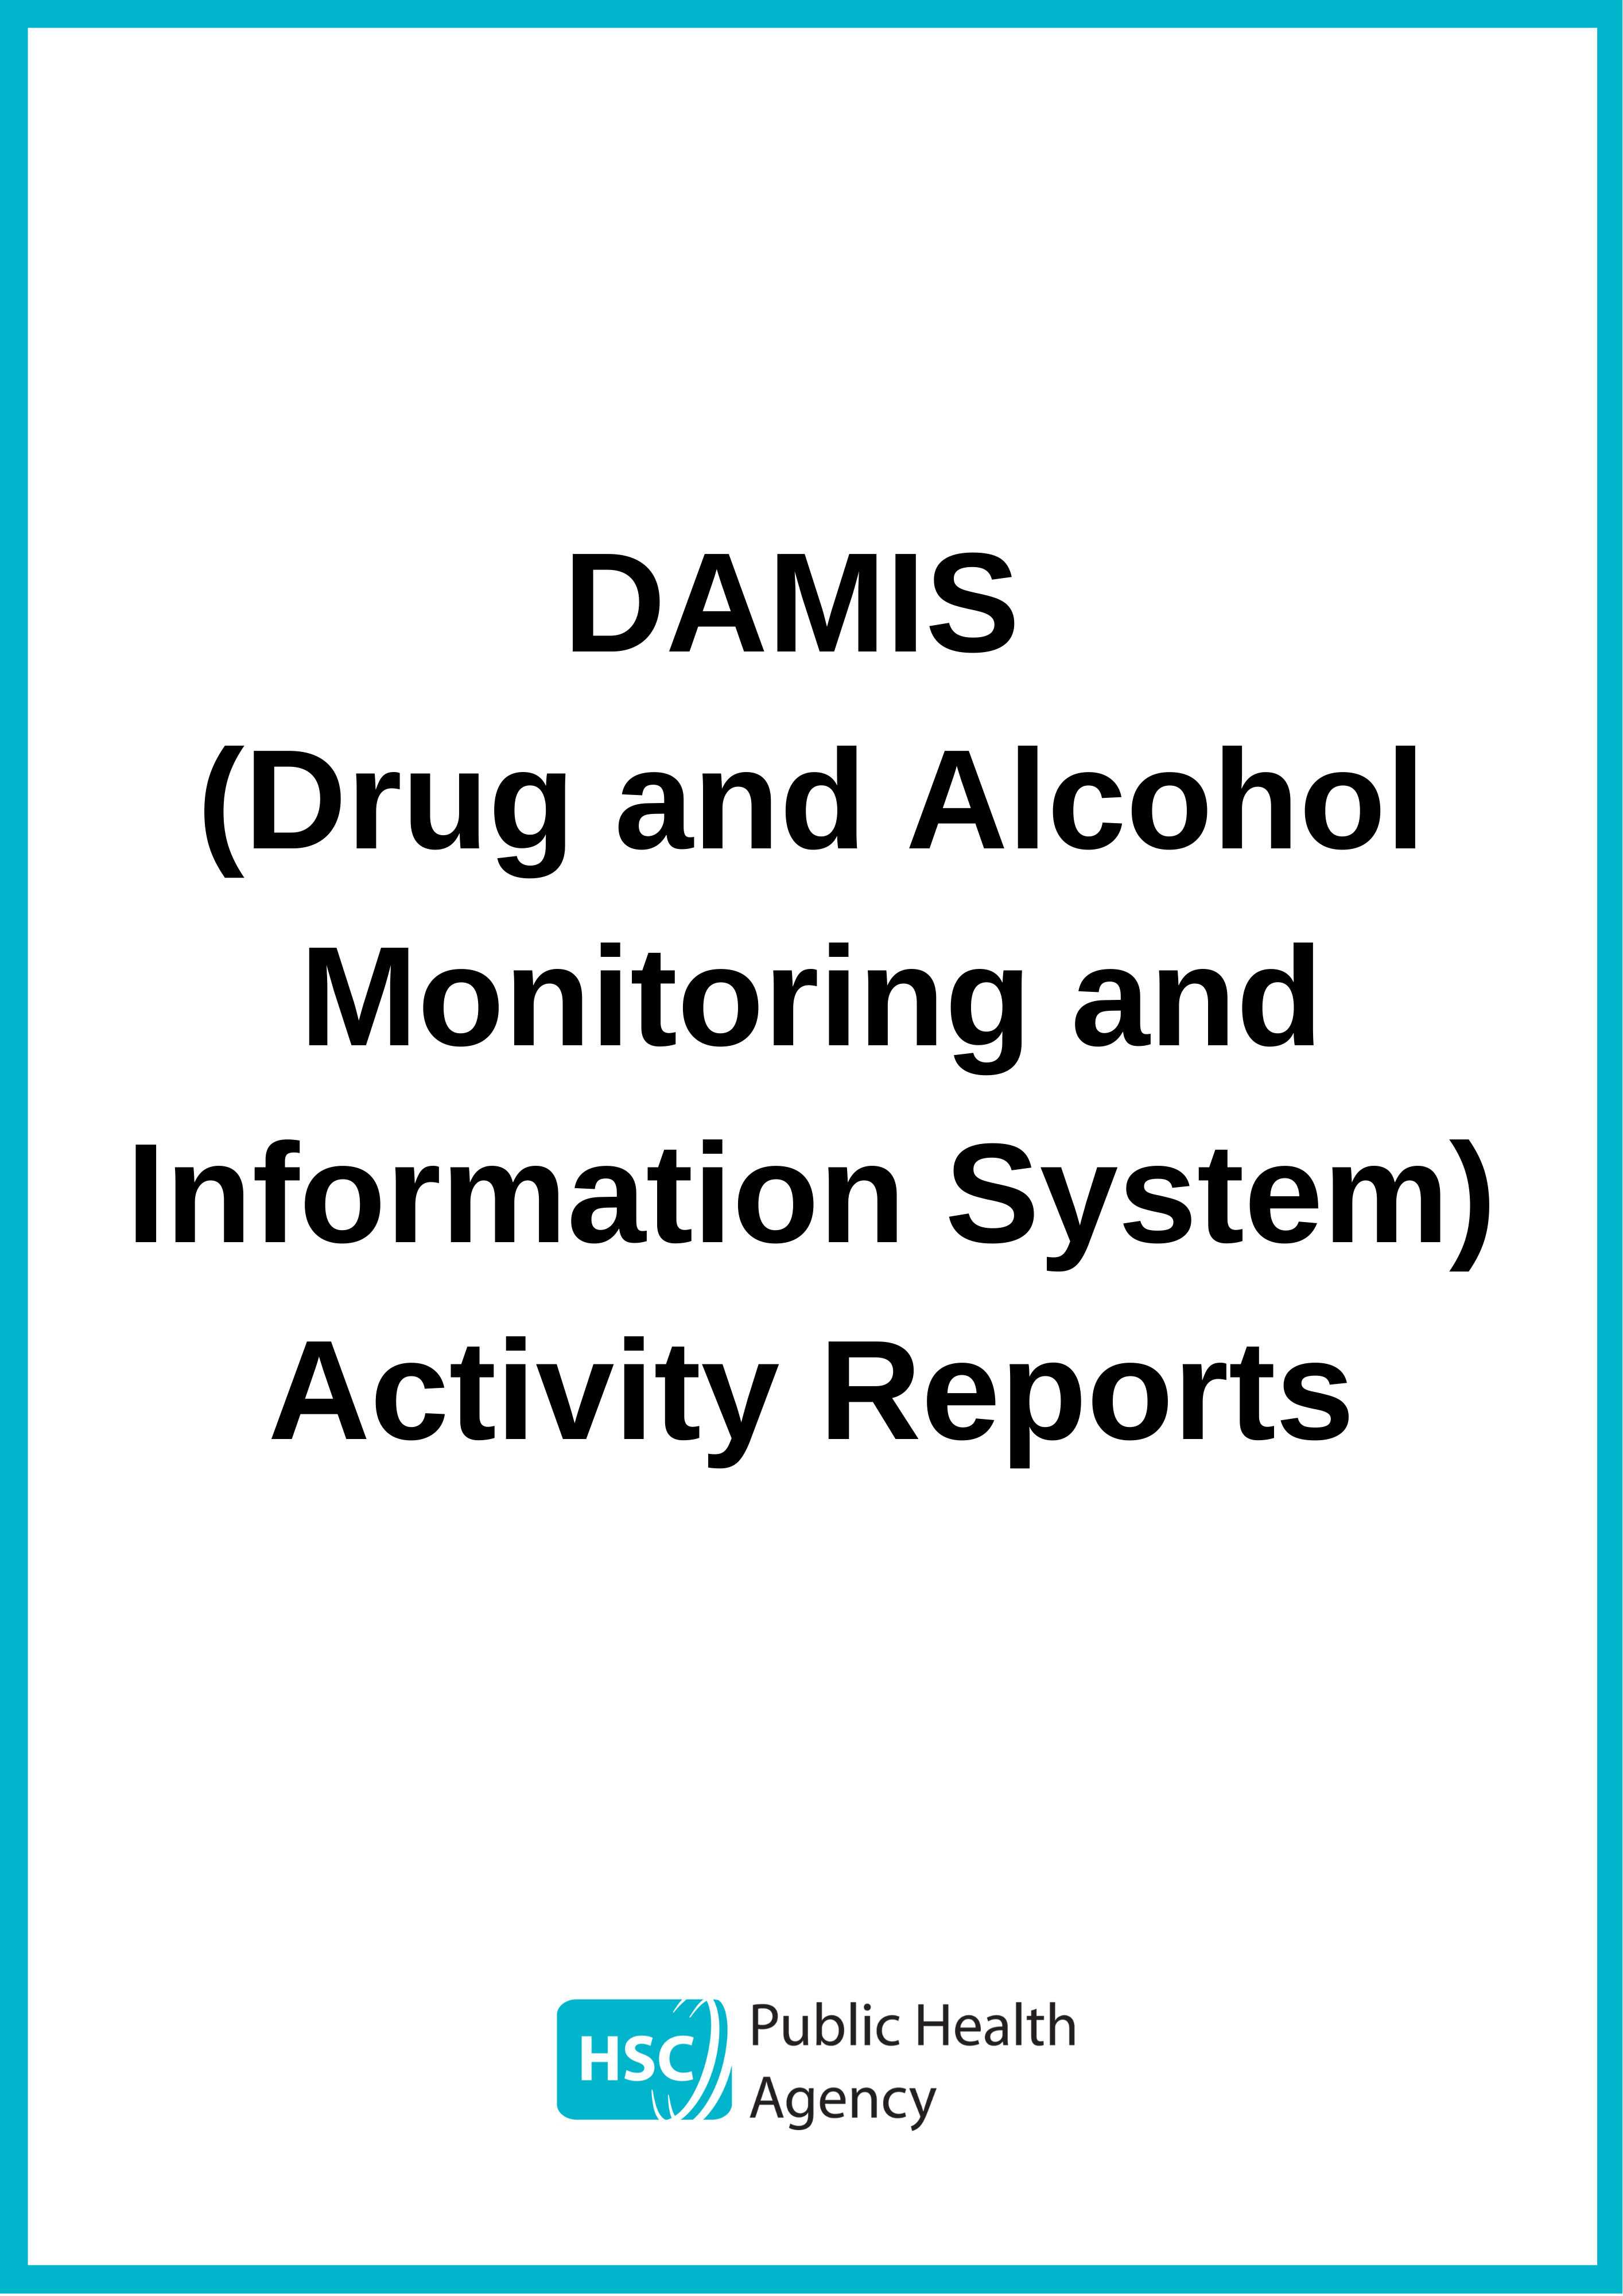 DAMIS report cover